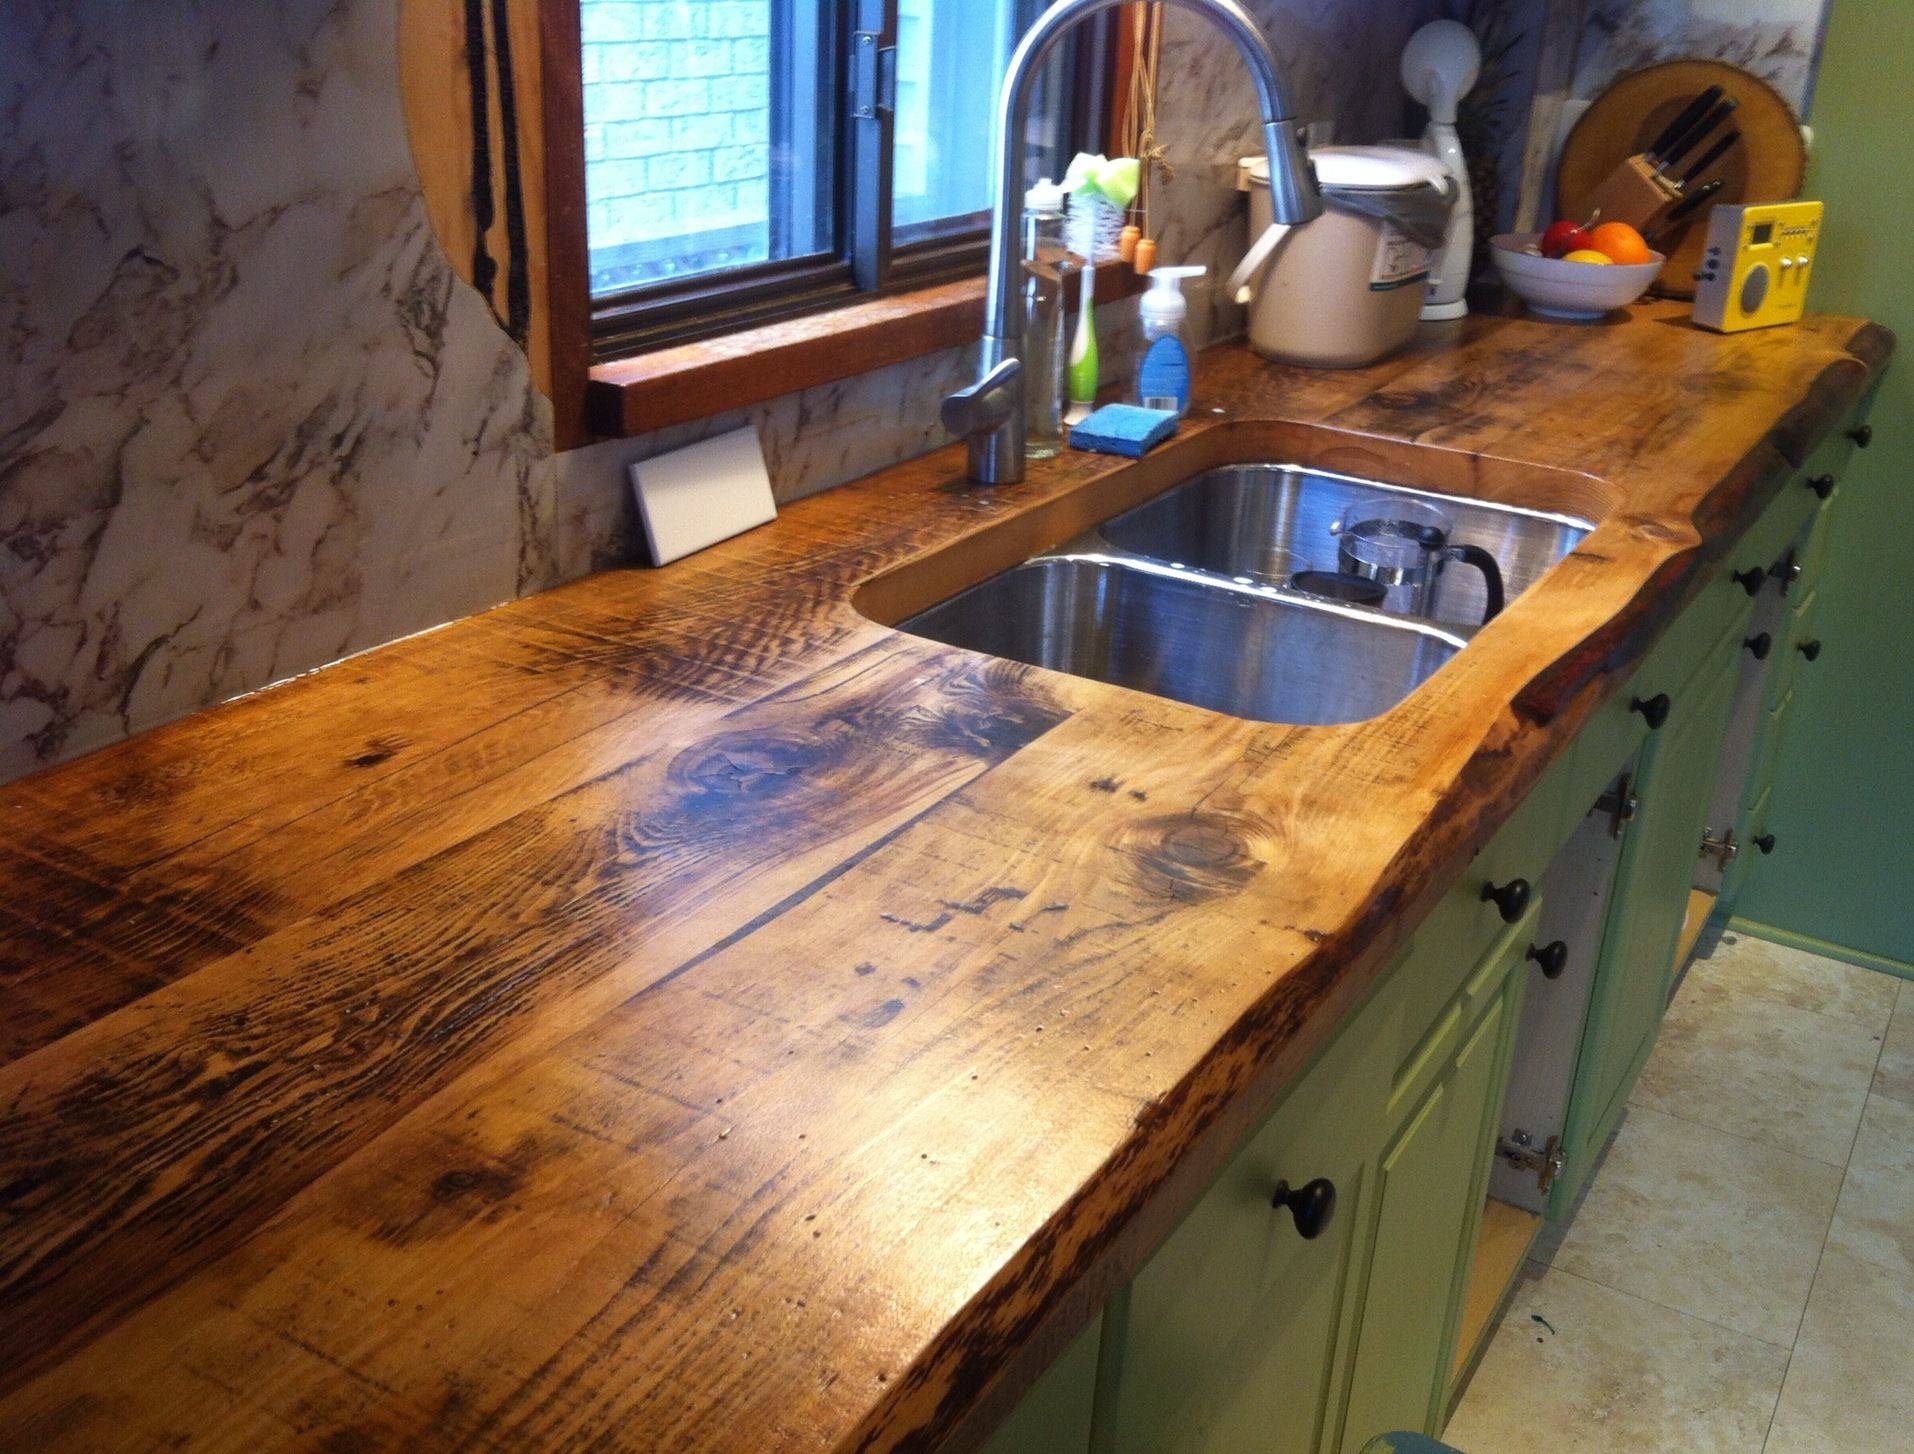 Best Kitchen Gallery: Charming And Classy Wooden Kitchen Countertops Pinterest of 2x4 Kitchen Counter on rachelxblog.com